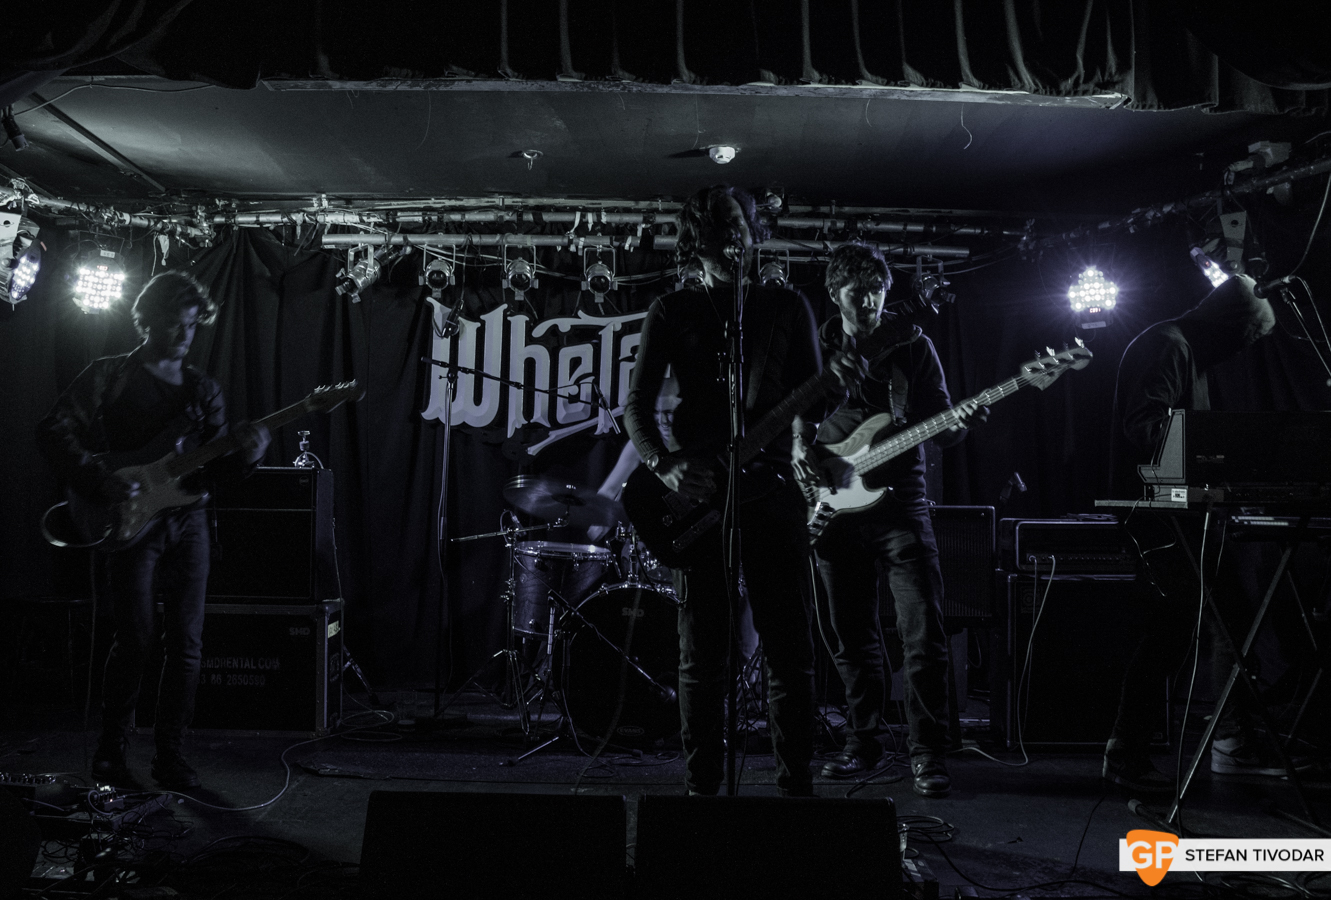 Synk Whelans Ones to Watch Winter 2019 Day Whelans Ones to Watch Winter 2019 Day 5 6